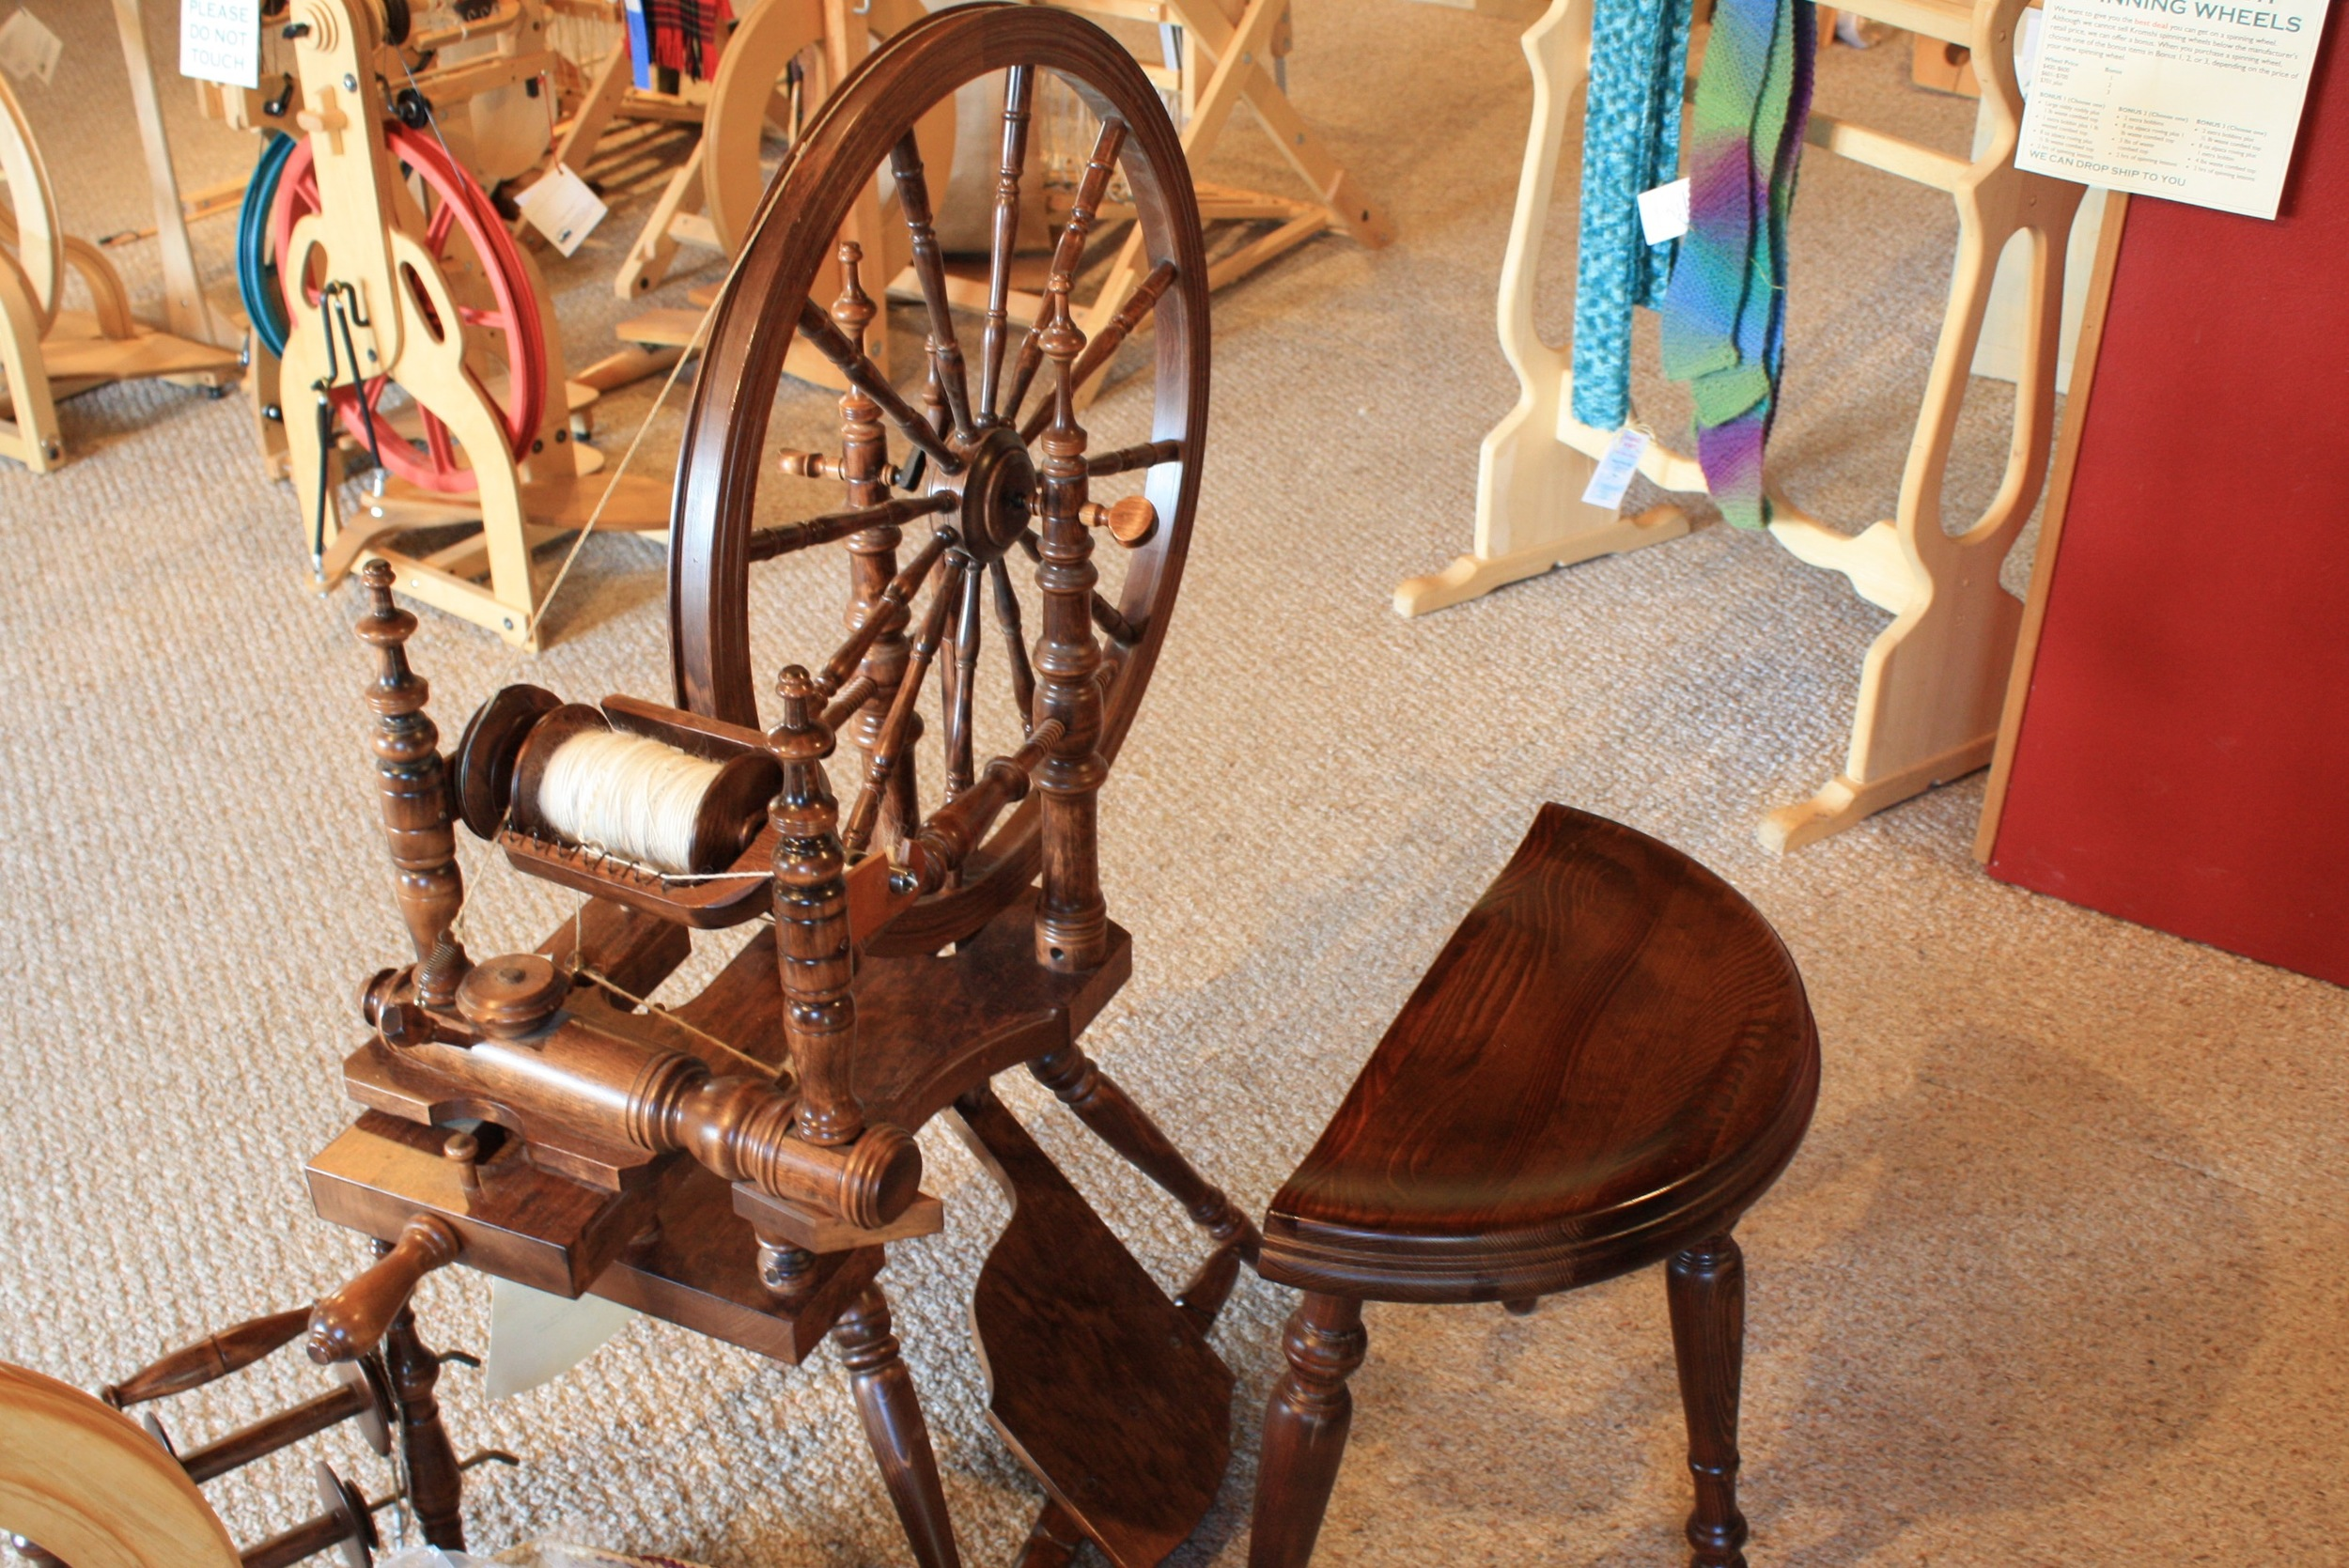 Another gorgeous spinning wheel in the yarn shop